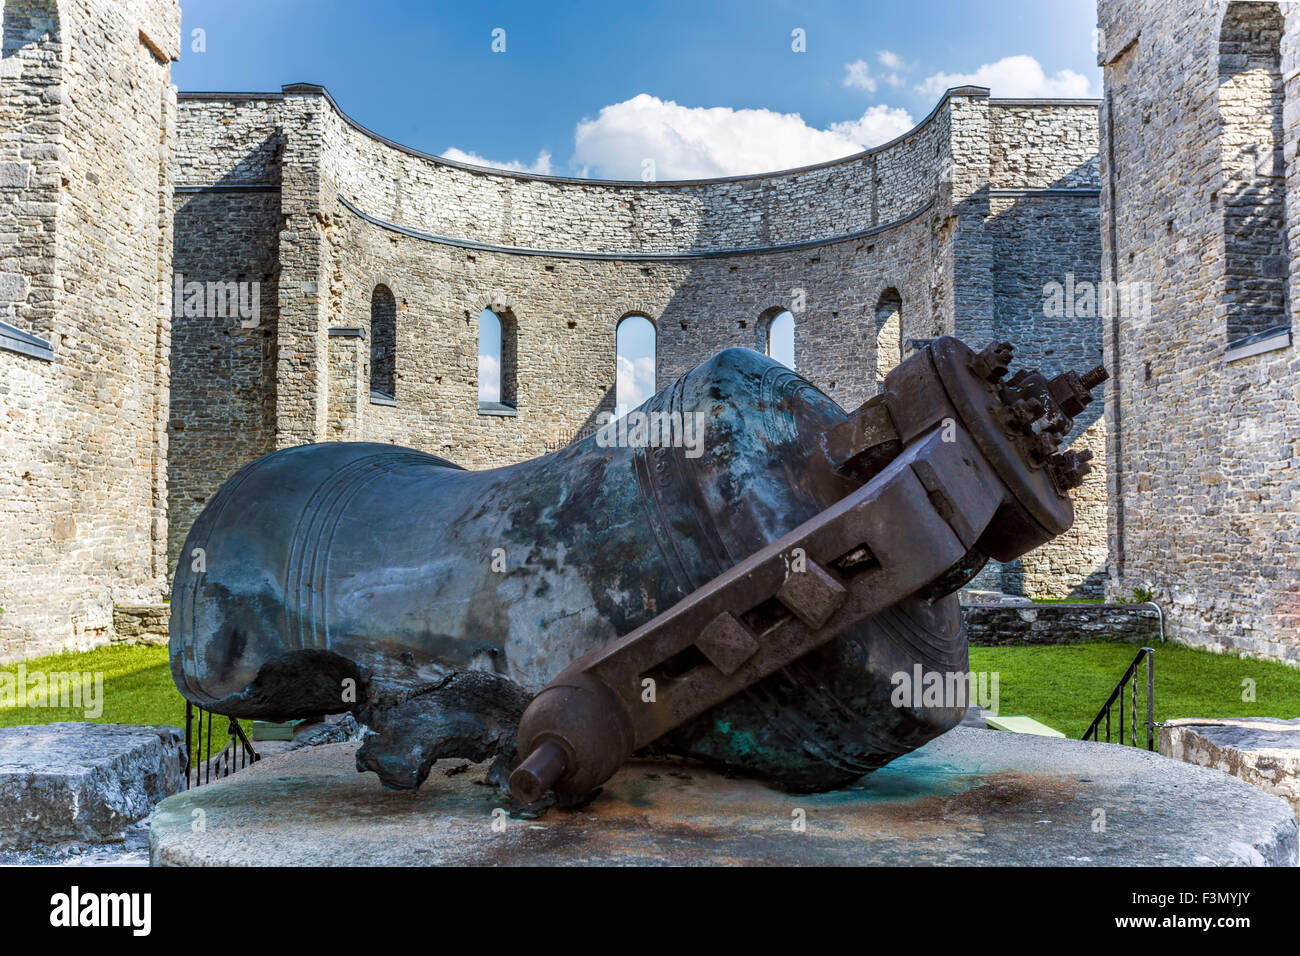 All That Remains Of St Raphaels >> The Bell Remains Of St Raphael S Church On Display Stock Photo